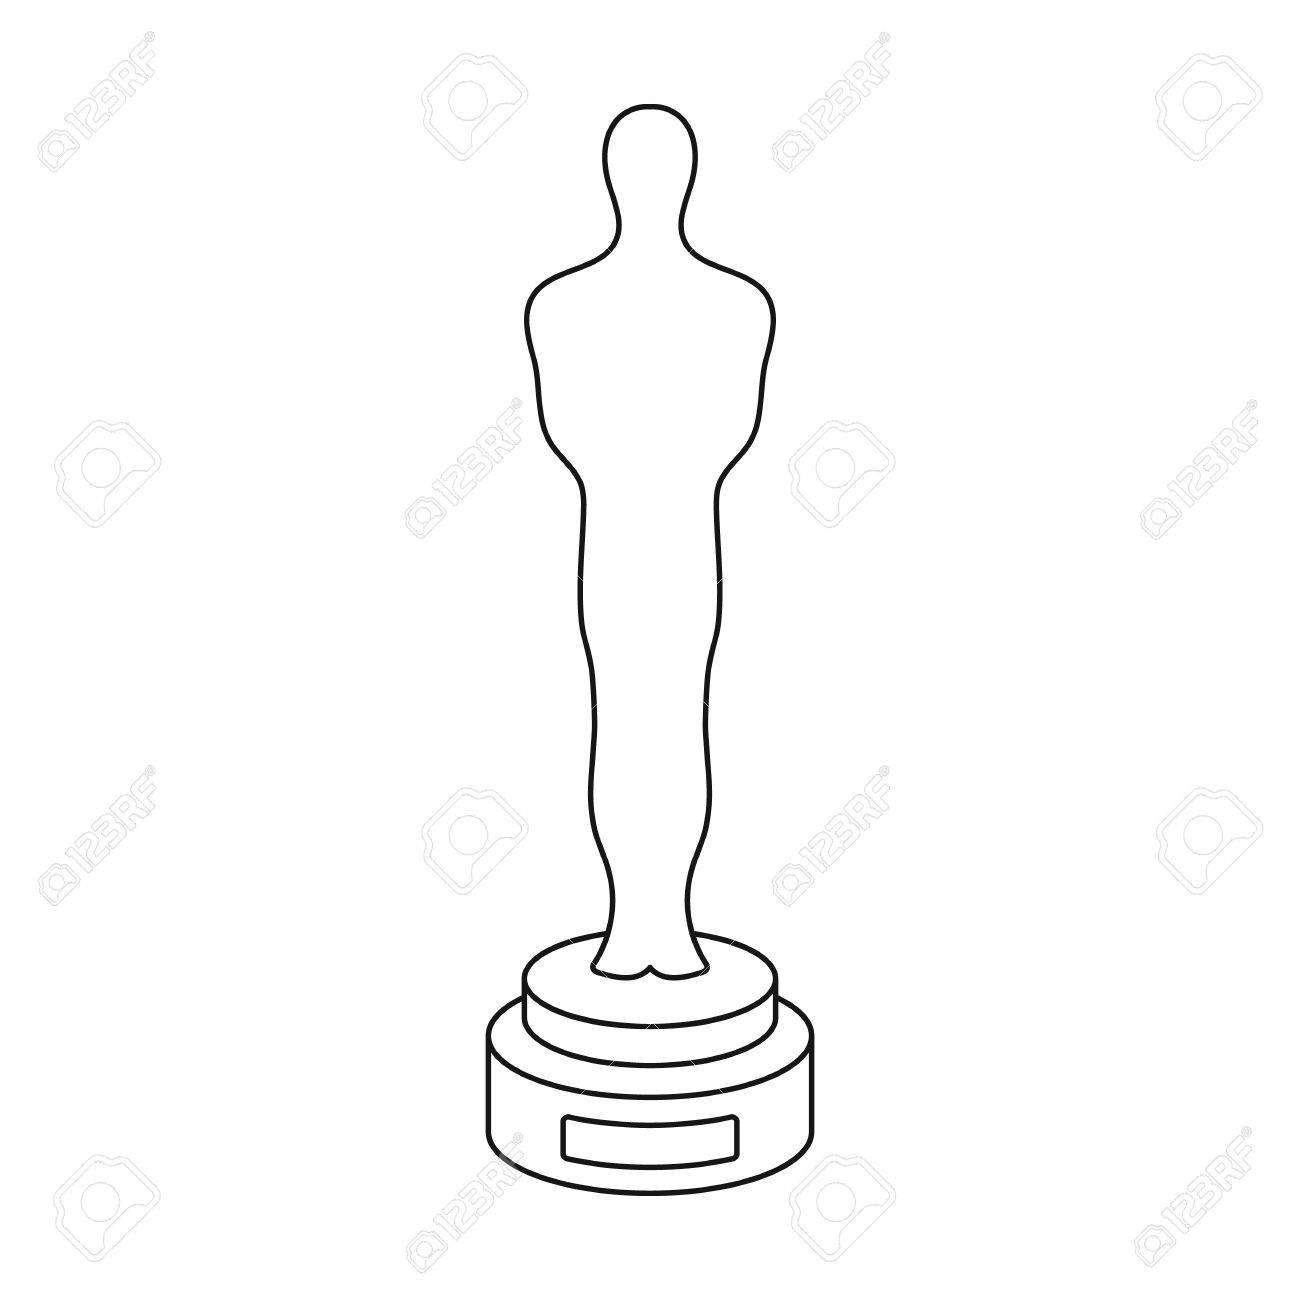 academy award icon in outline style isolated on white background